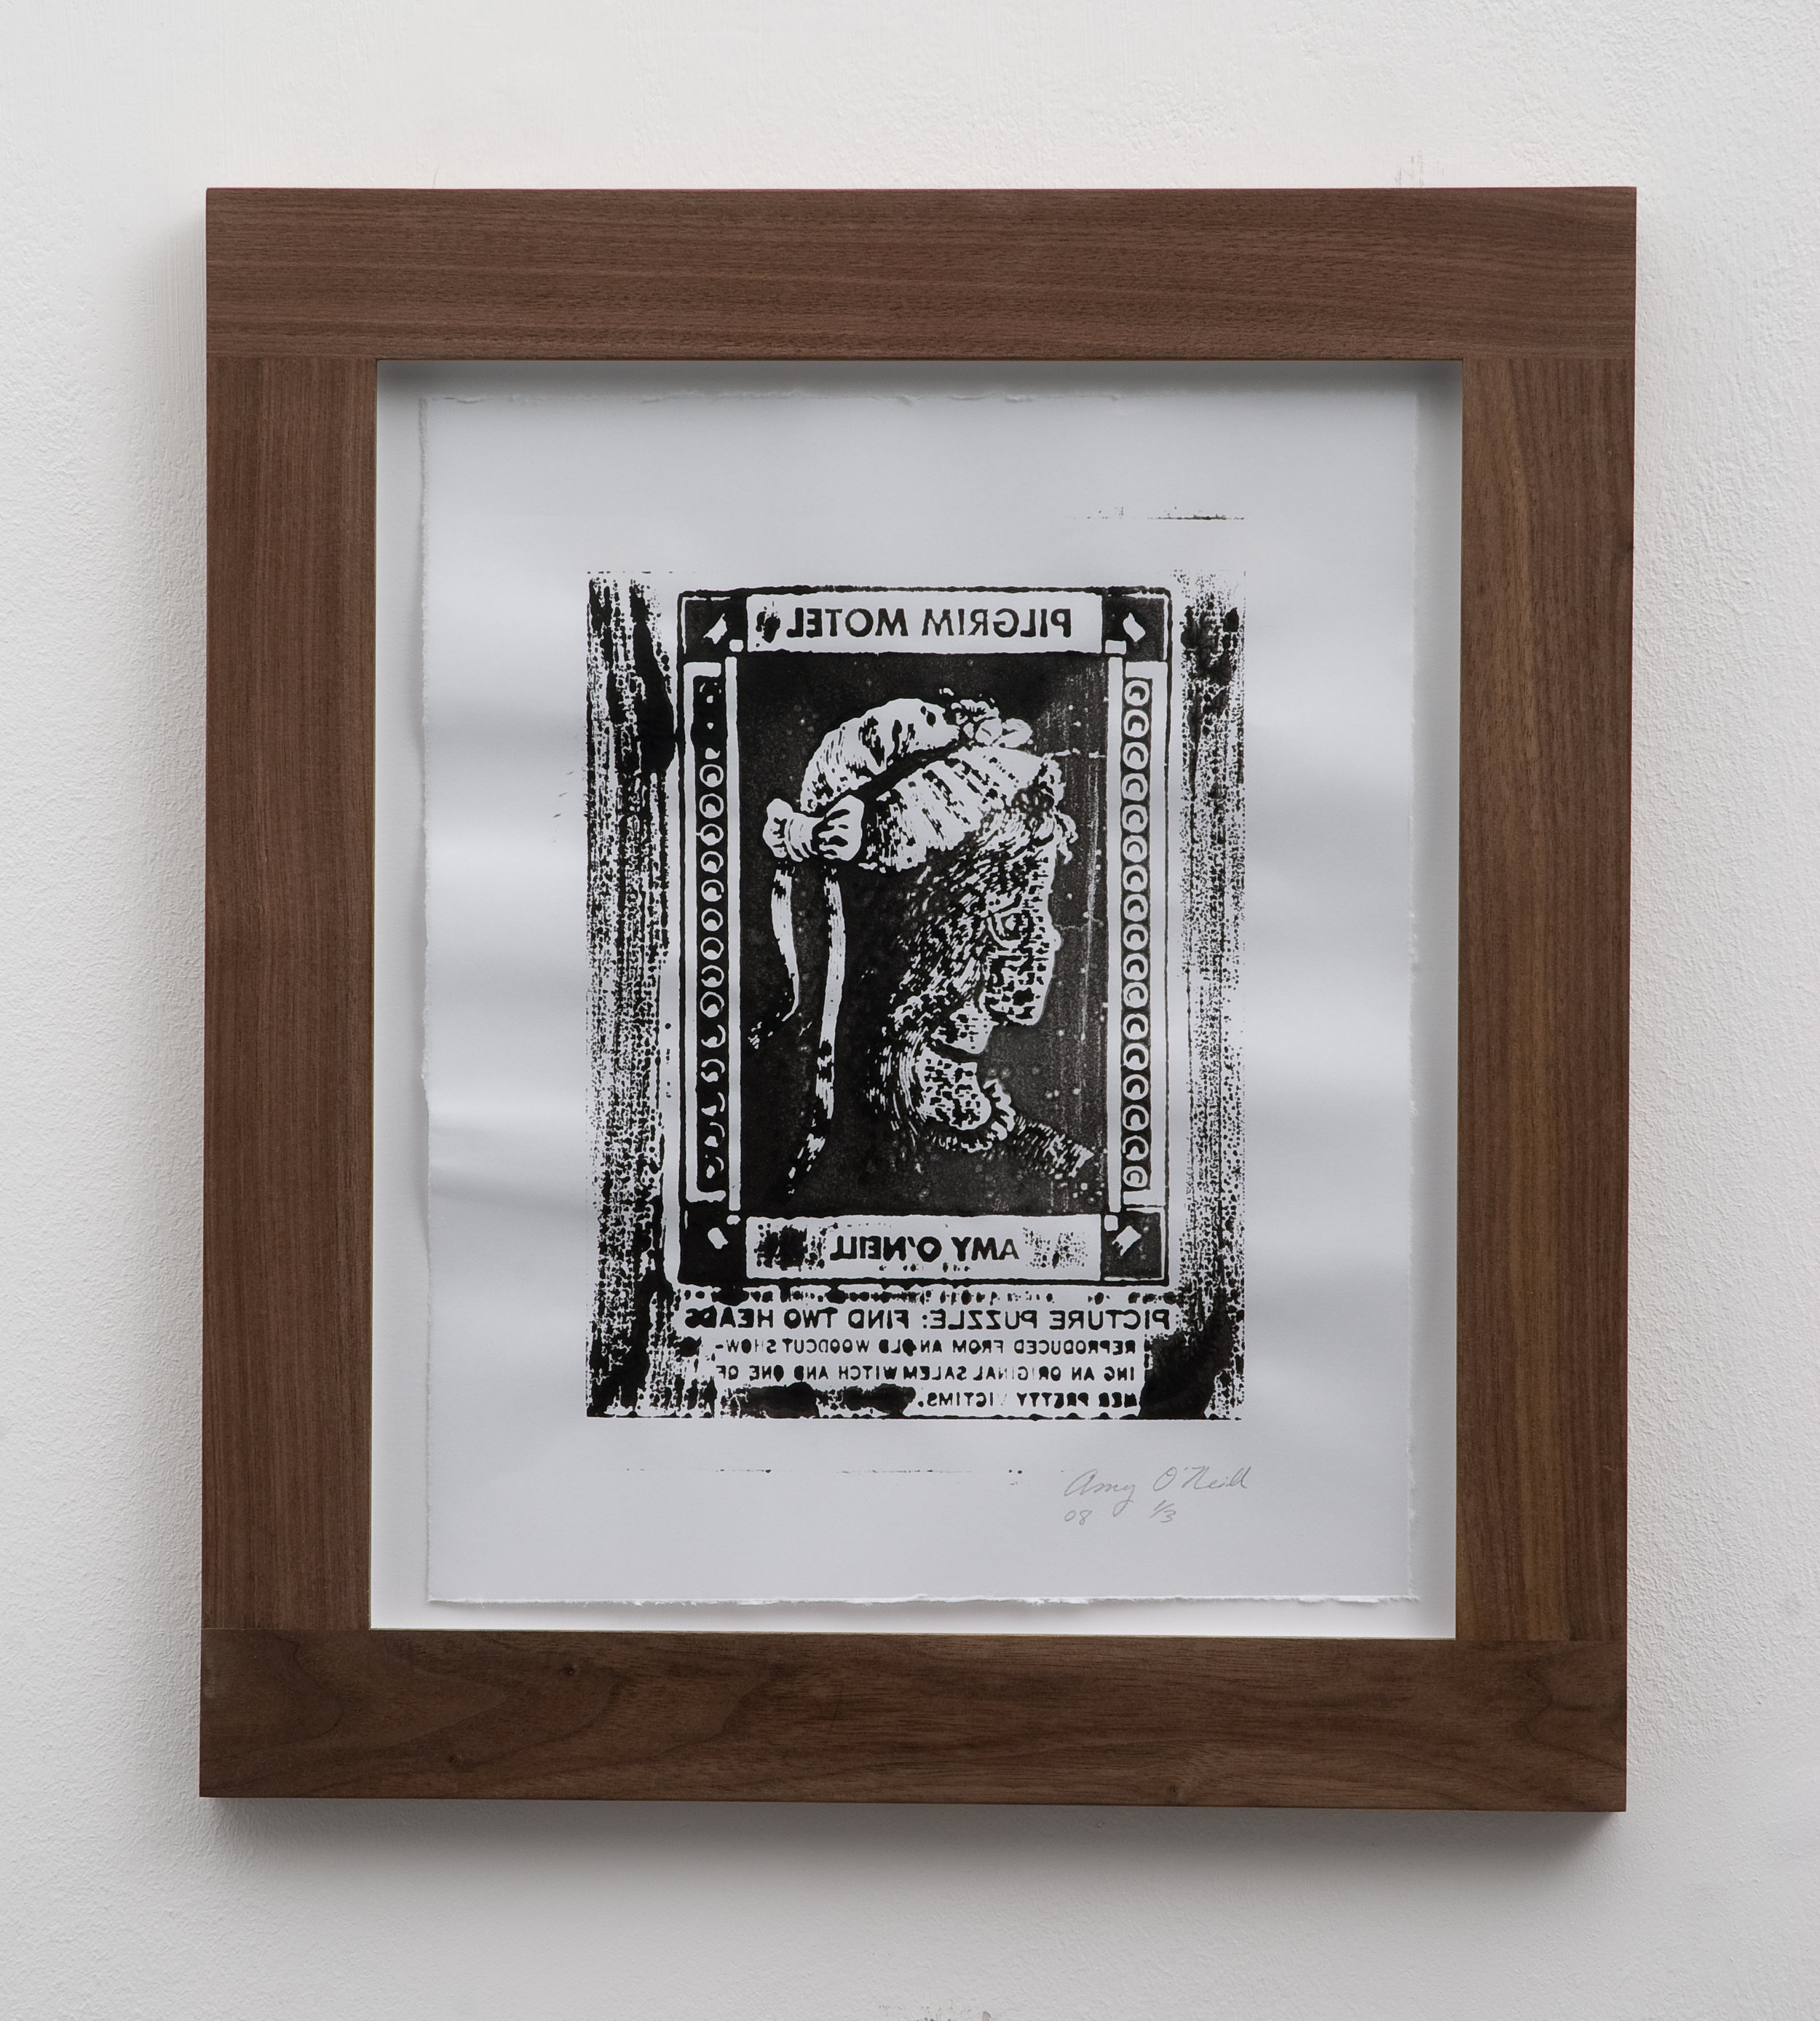 Salem Witch/Pretty Victim (Mirrored), 2008 woodcut print 32 x 26,5 cm - 12 1/2 x 10 3/8 inches